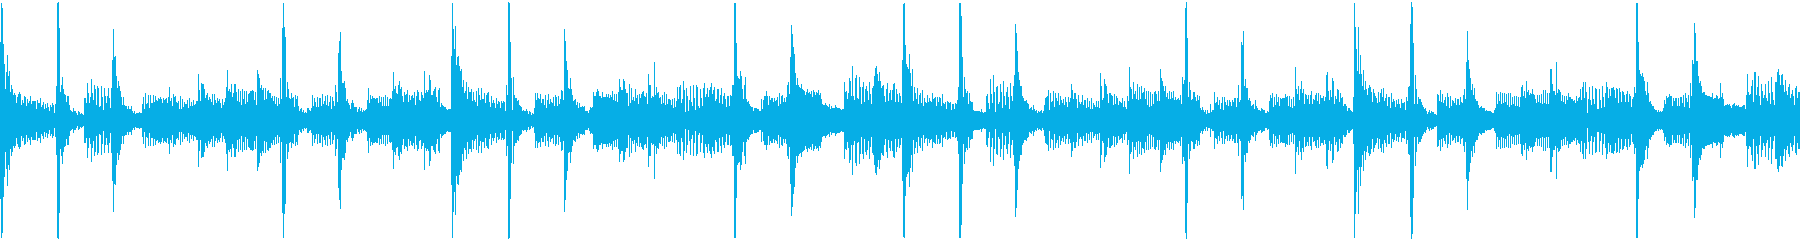 Upbeat, happy and...'s reproduced waveform